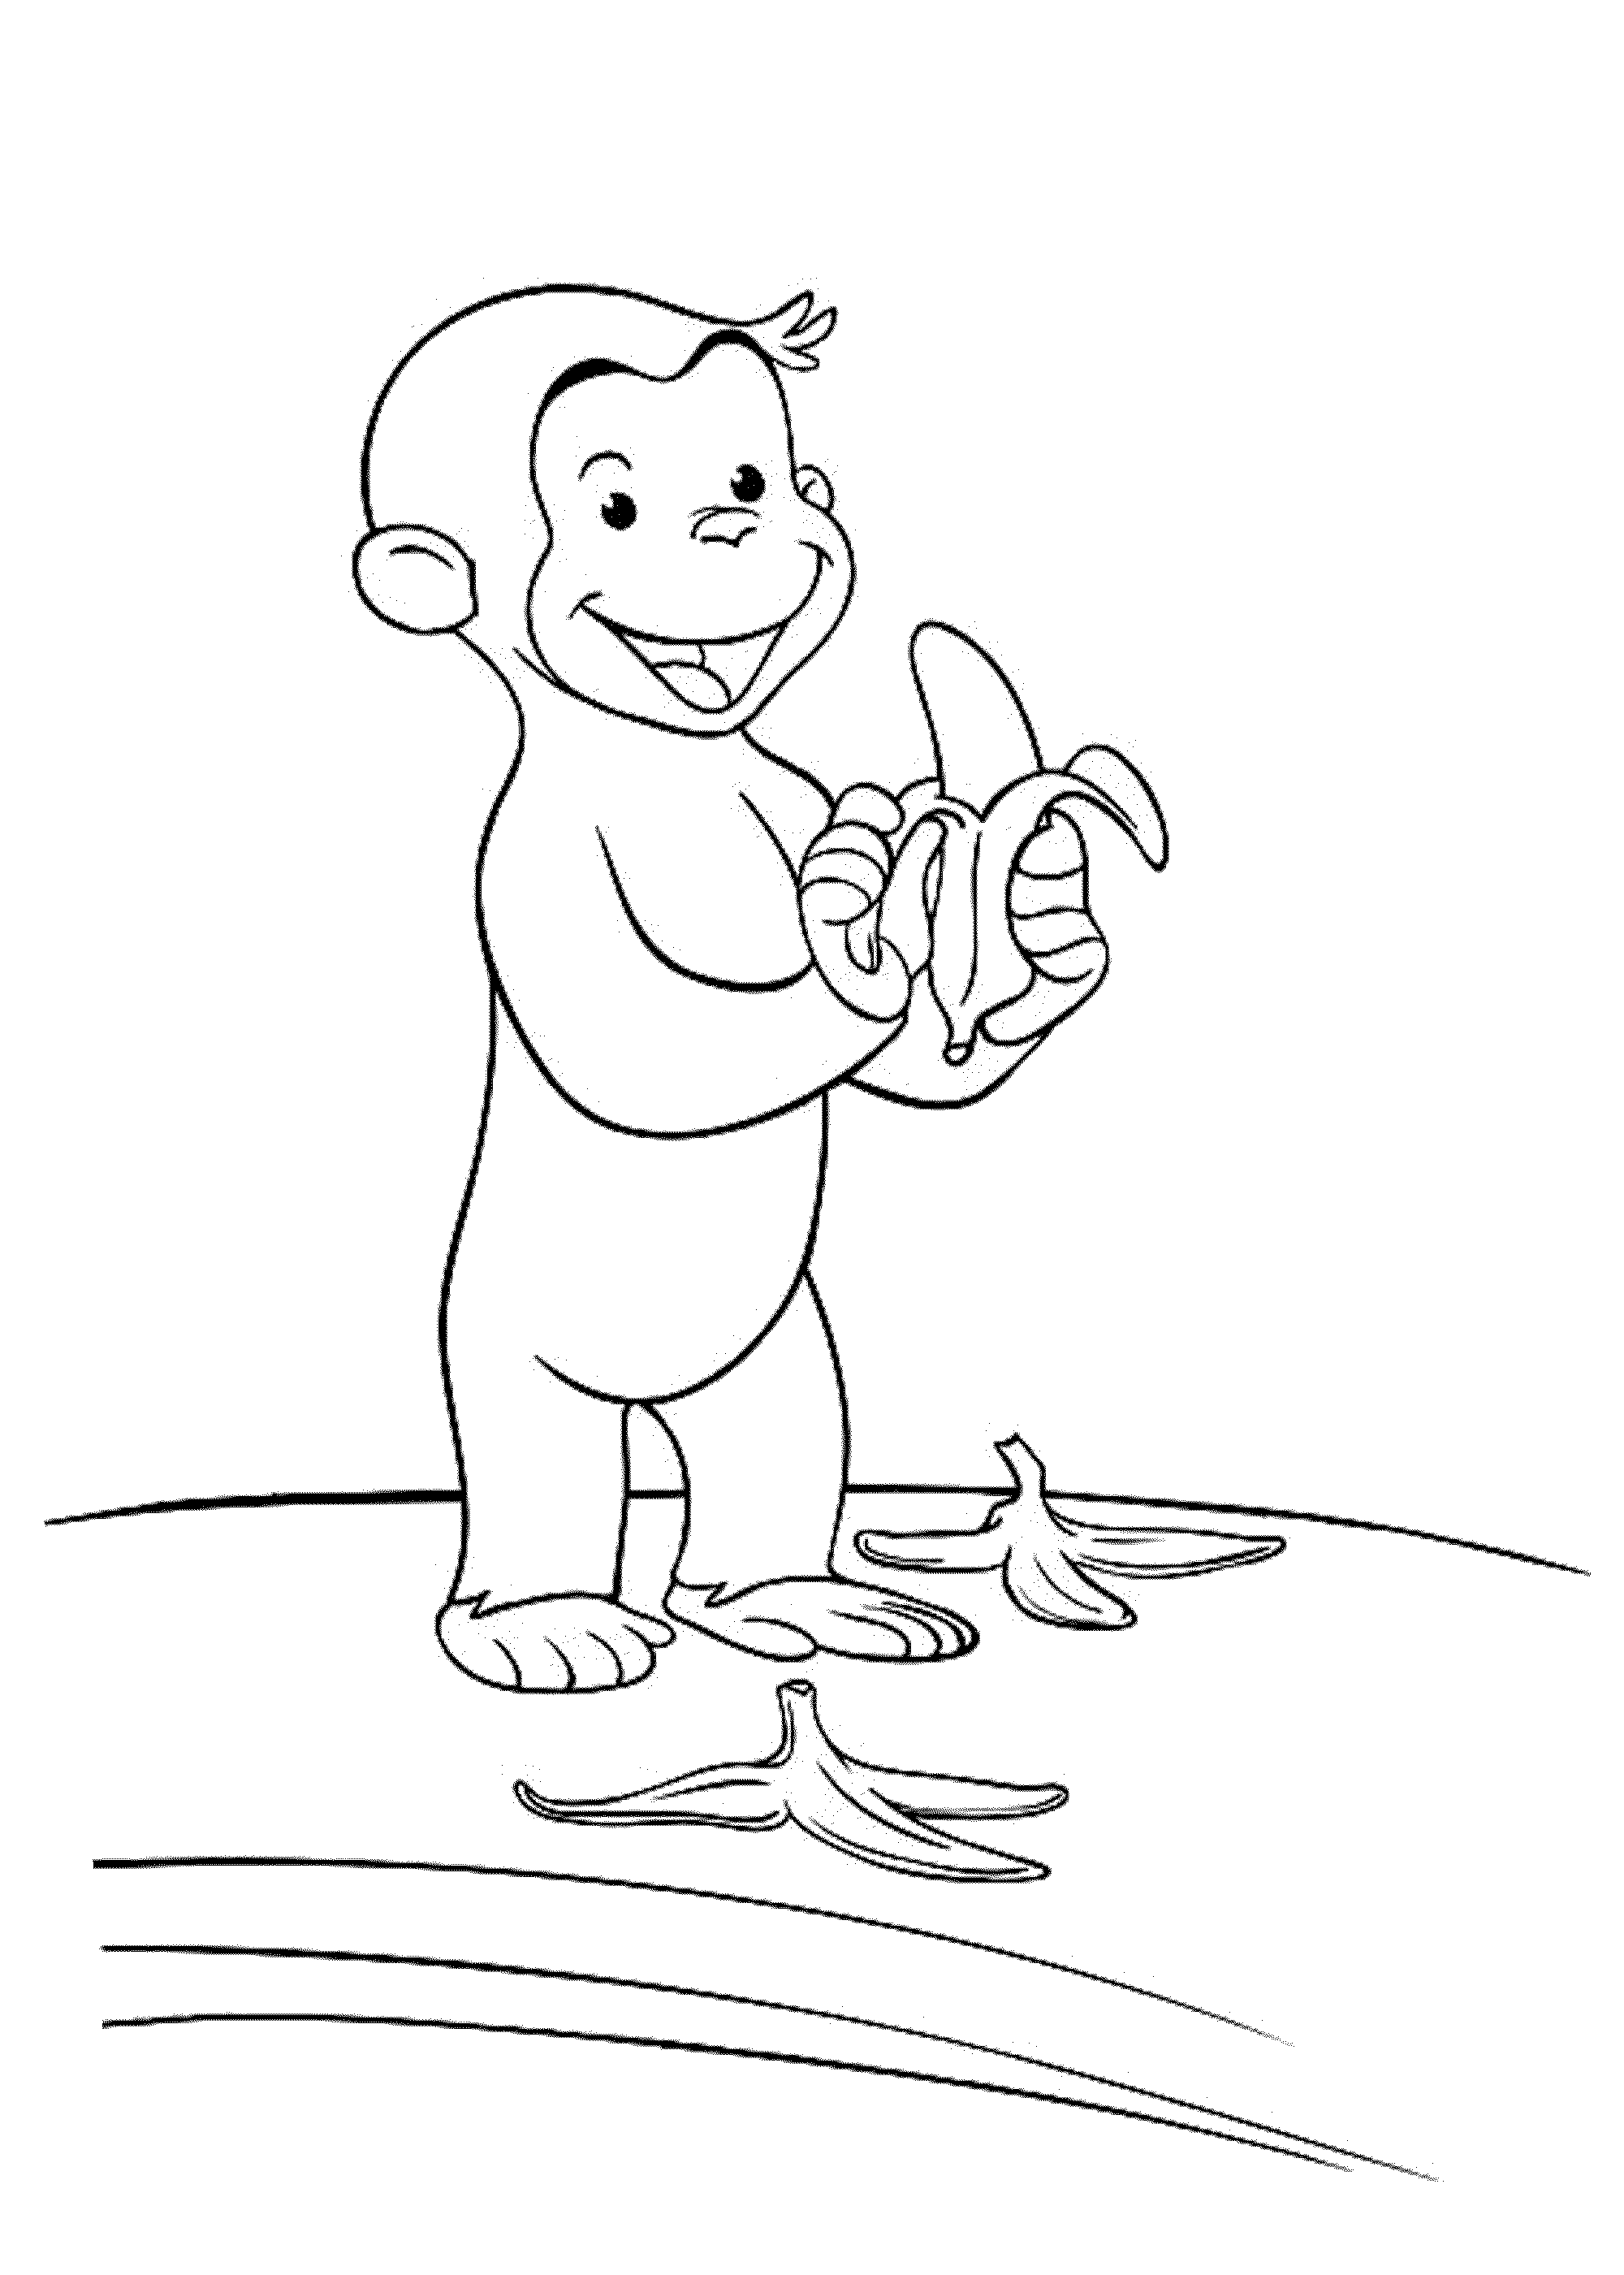 curious george coloring pages - photo#23